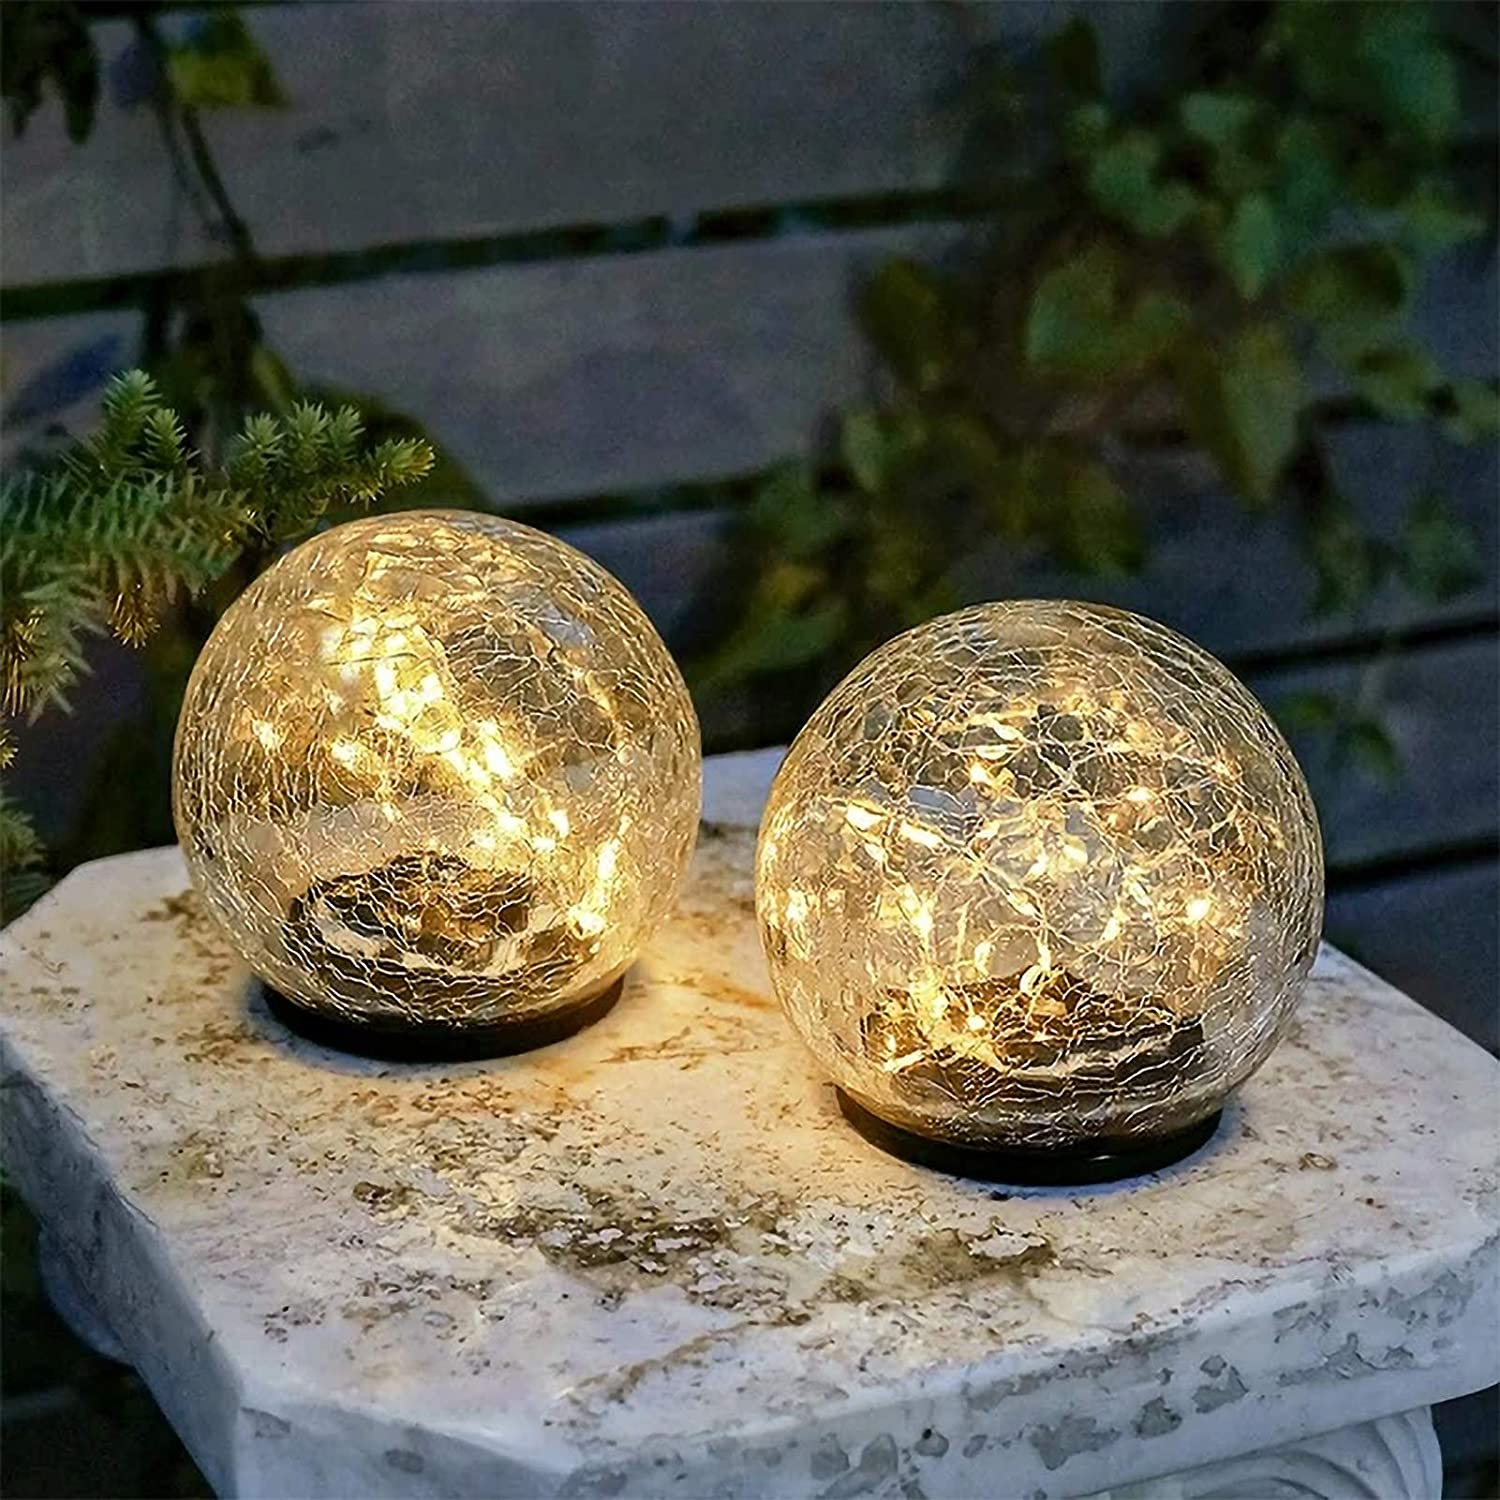 NC&APAUS Outdoor Solar Garden Lights Cracked Glass Balls In-Ground Solar Waterproof Lights Outdoor Solar Lamp for Lawn Patio Yard 2 Packs